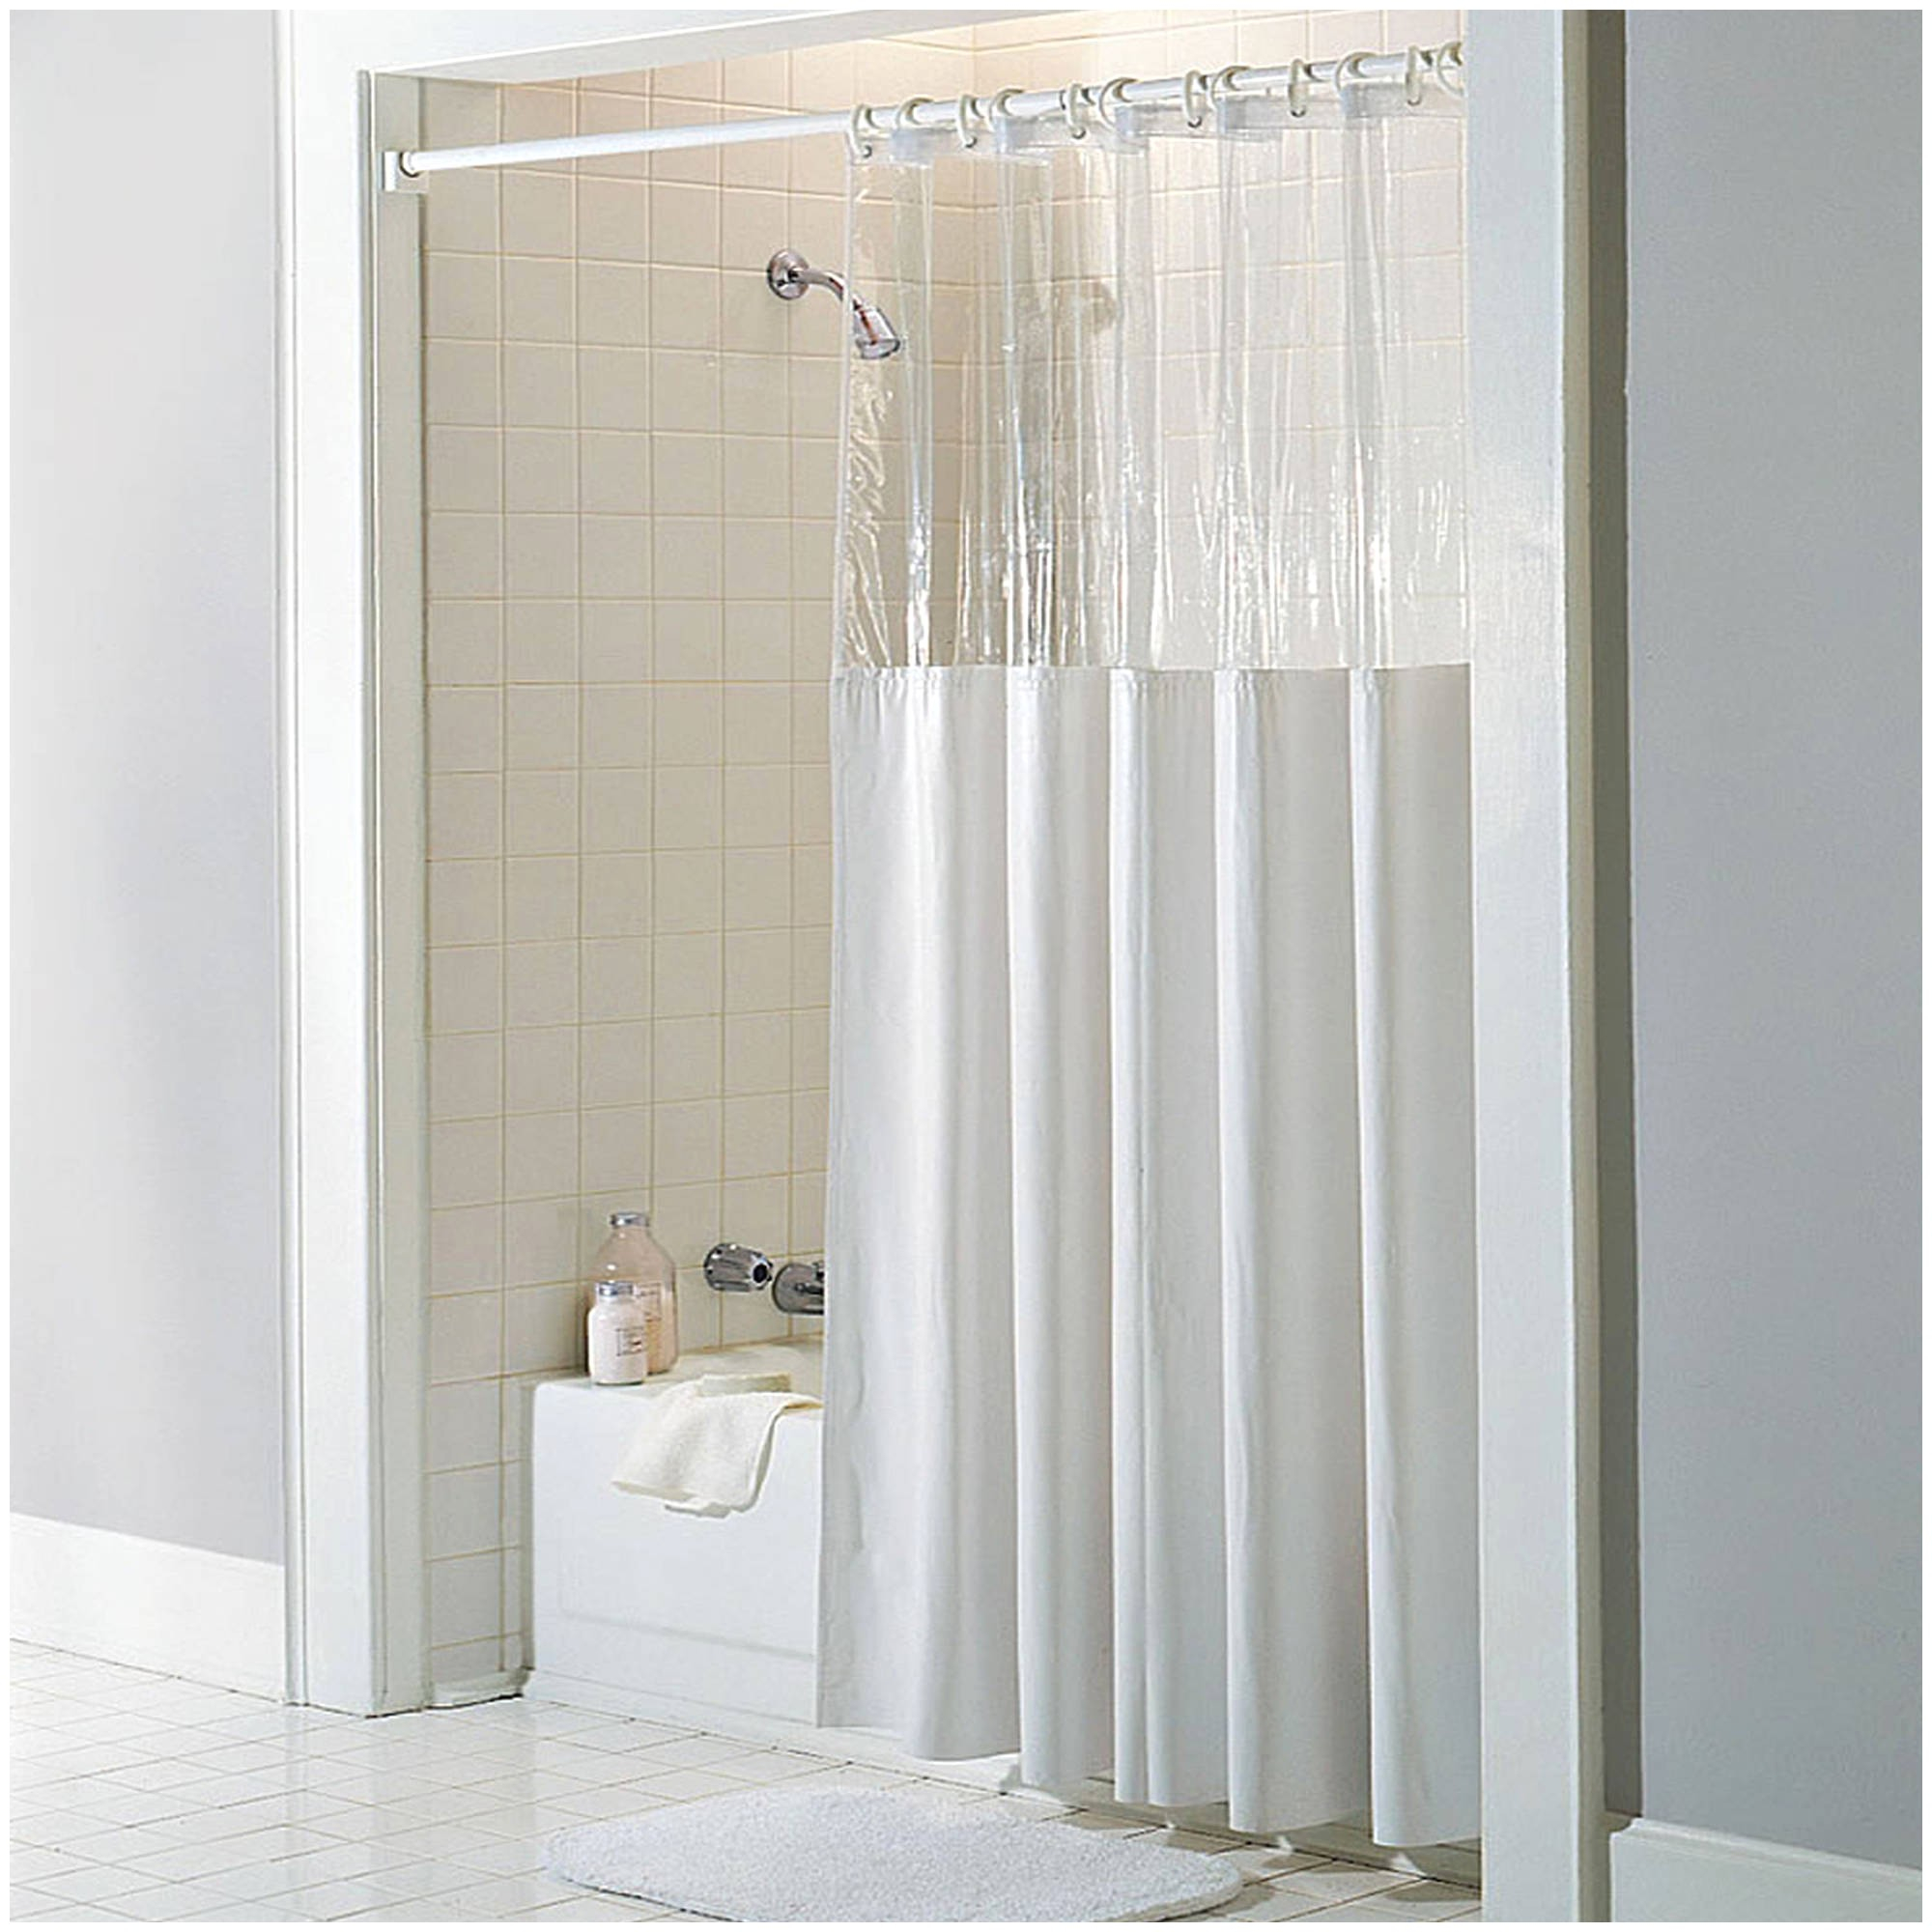 Shower Curtain With Pockets Flisol Home